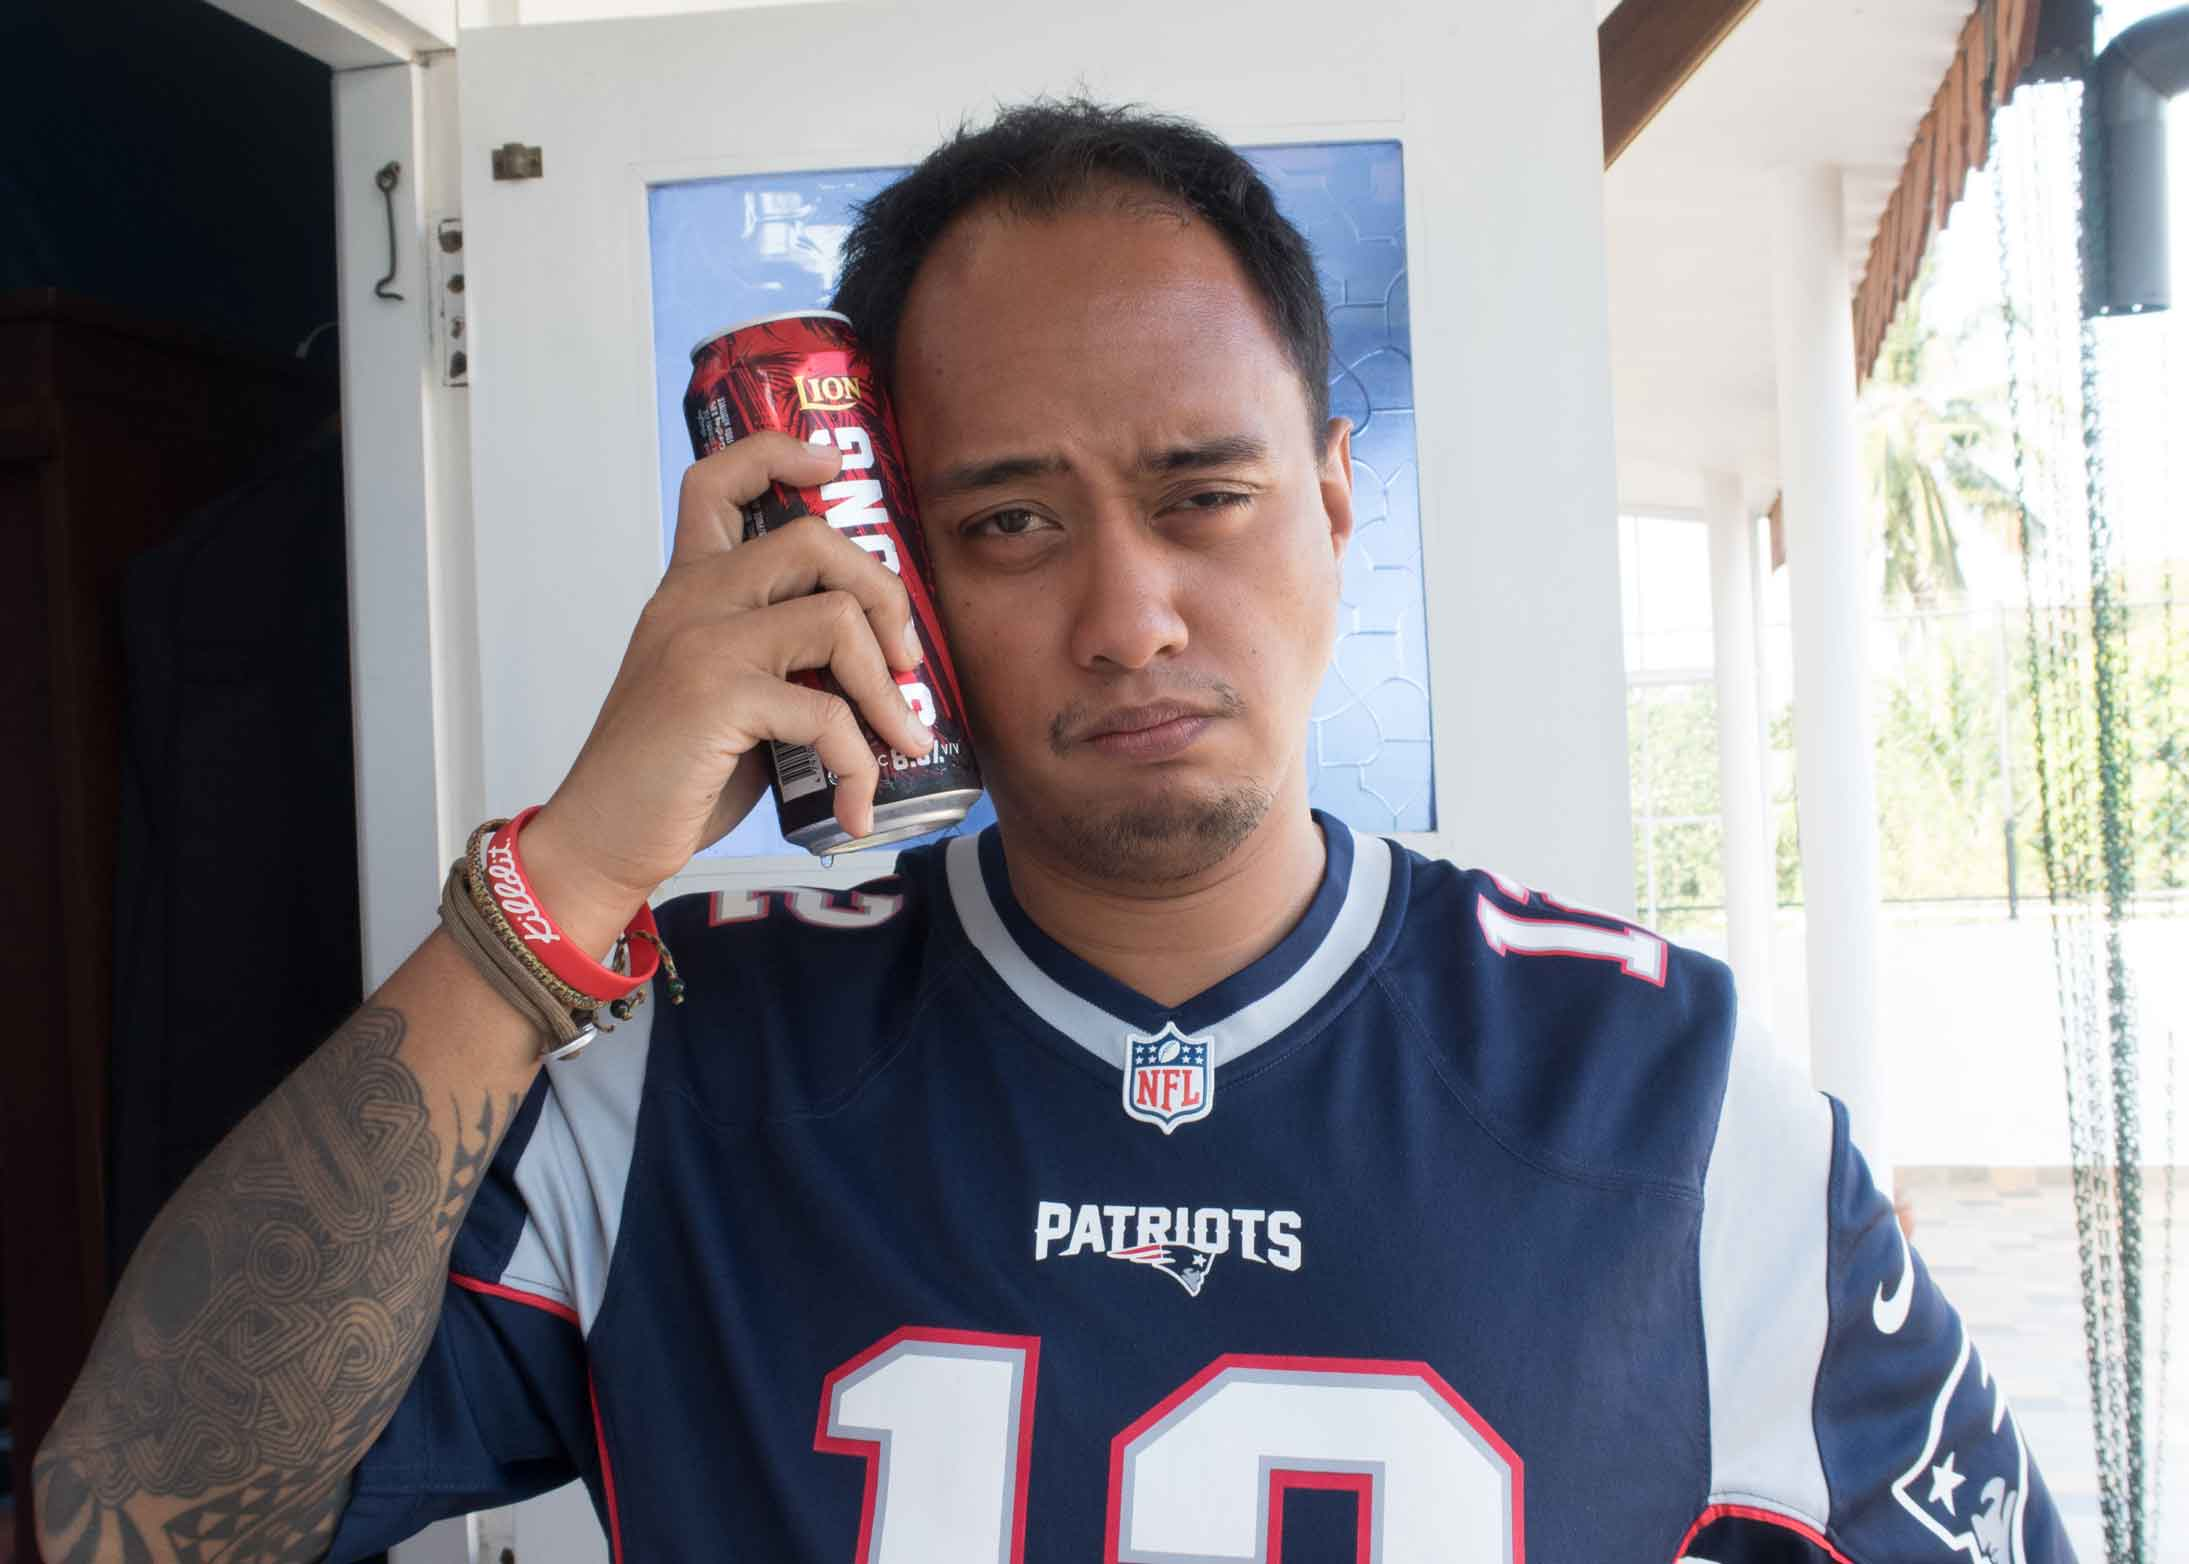 After a tough Super Bowl loss by the Patriots, I reacted with a beer to my head